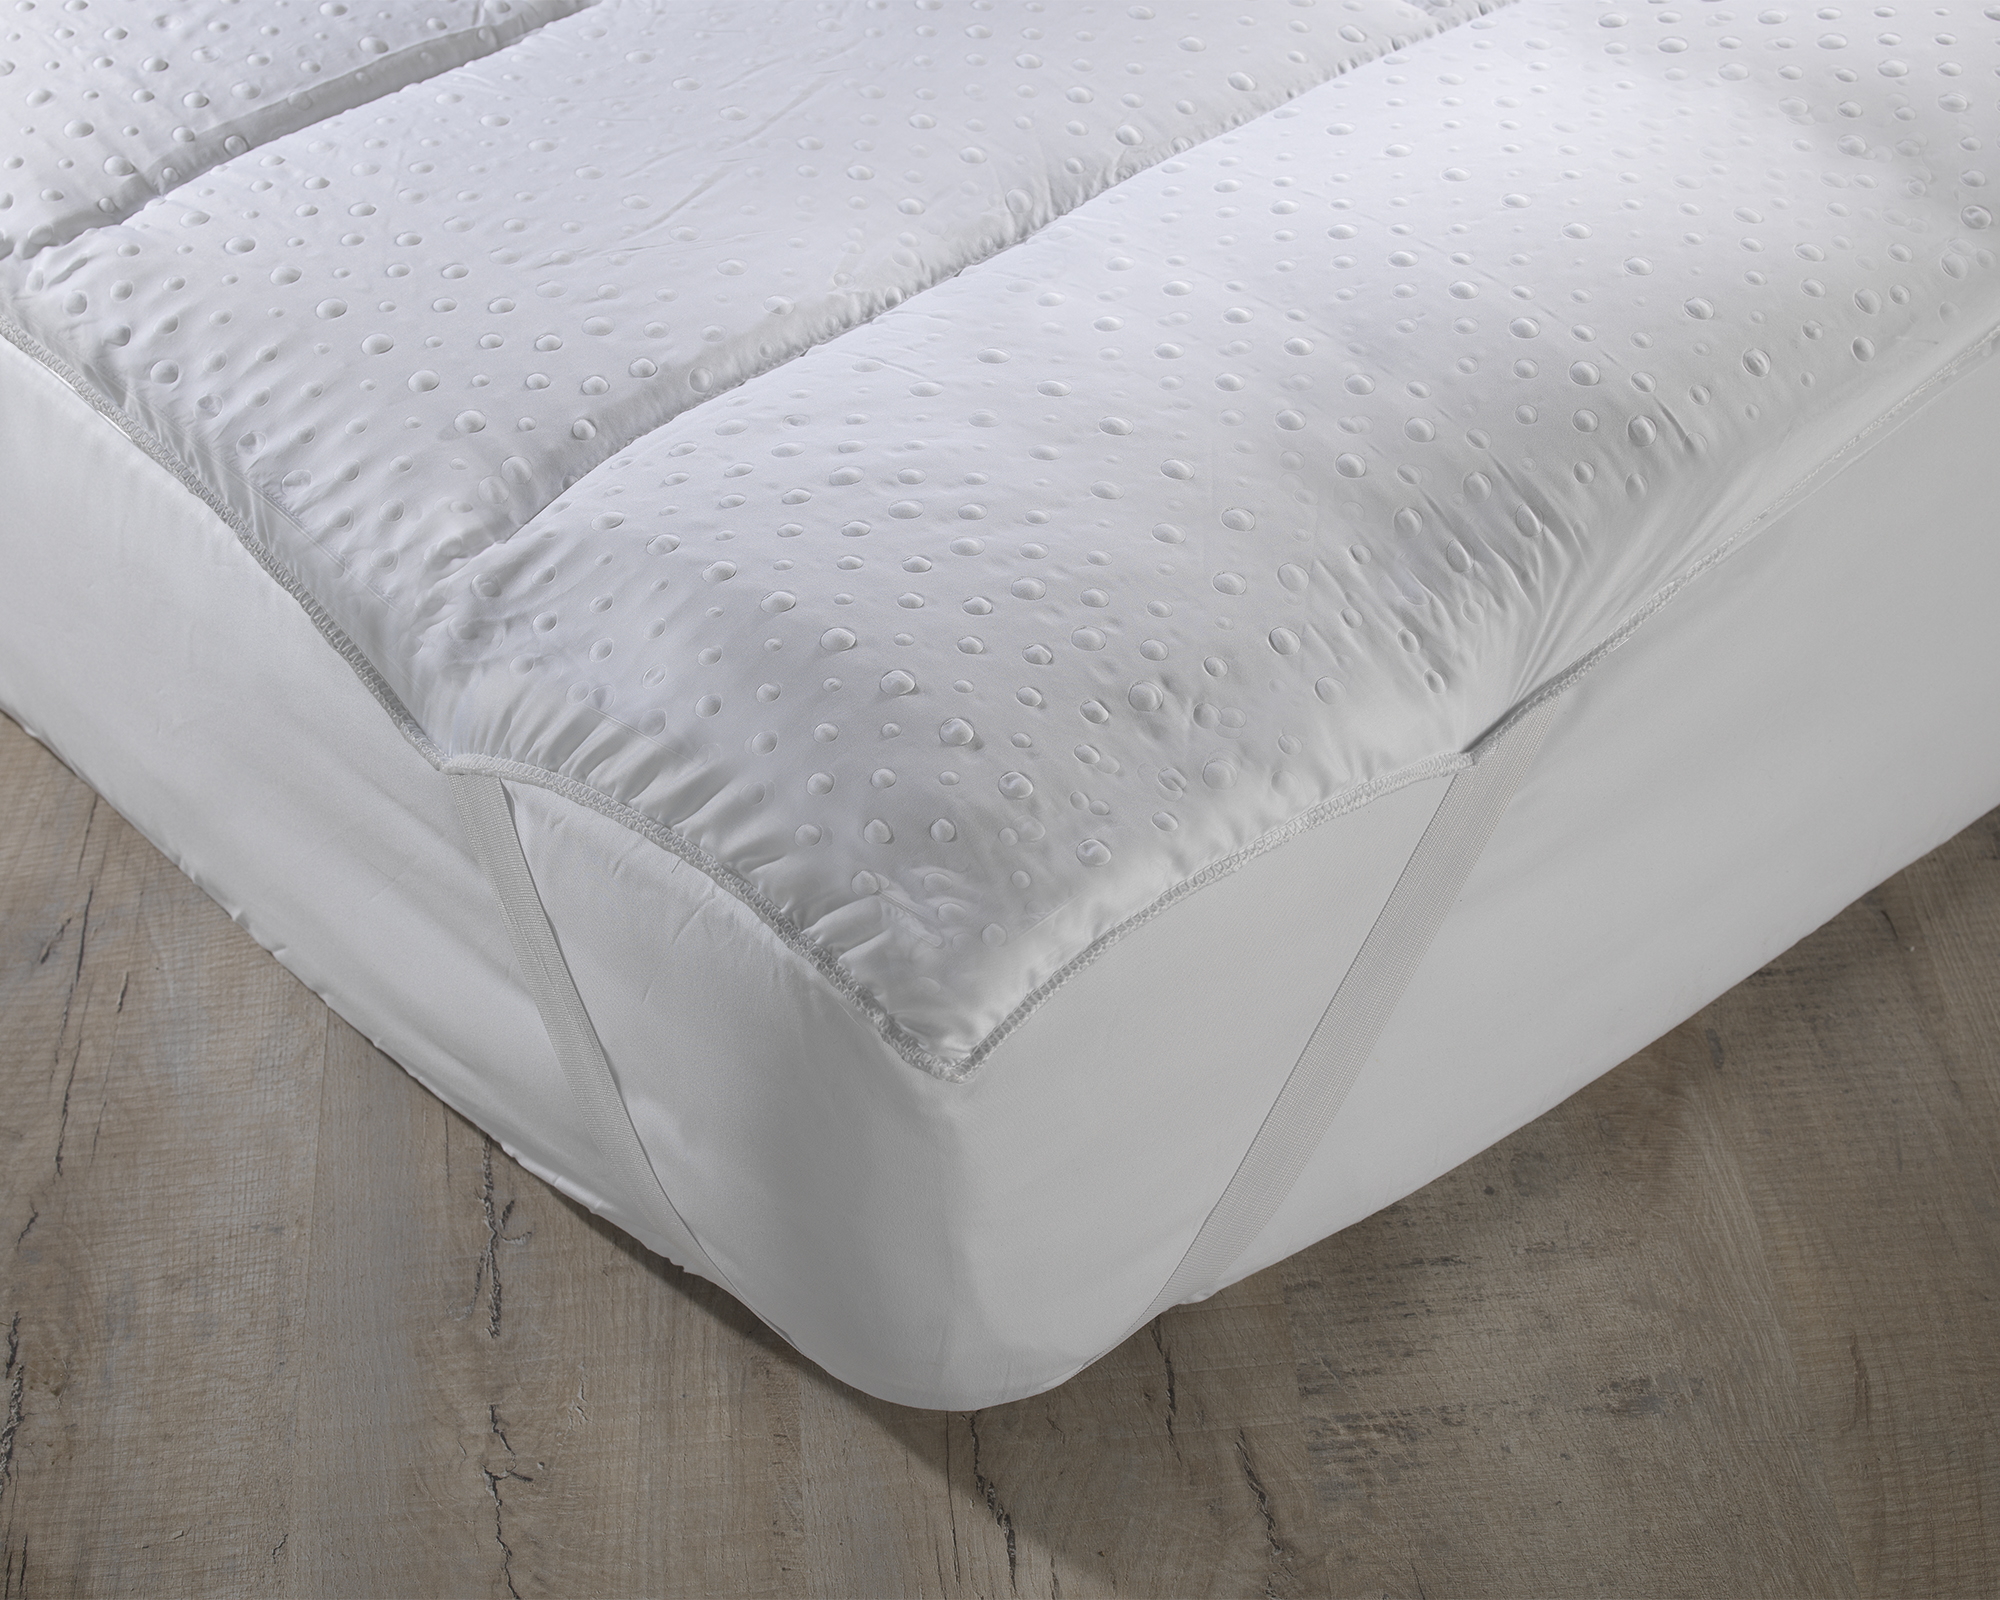 Topper Hollowfibre Filled Blended Cotton Cover All Sizes Mattress Reviver